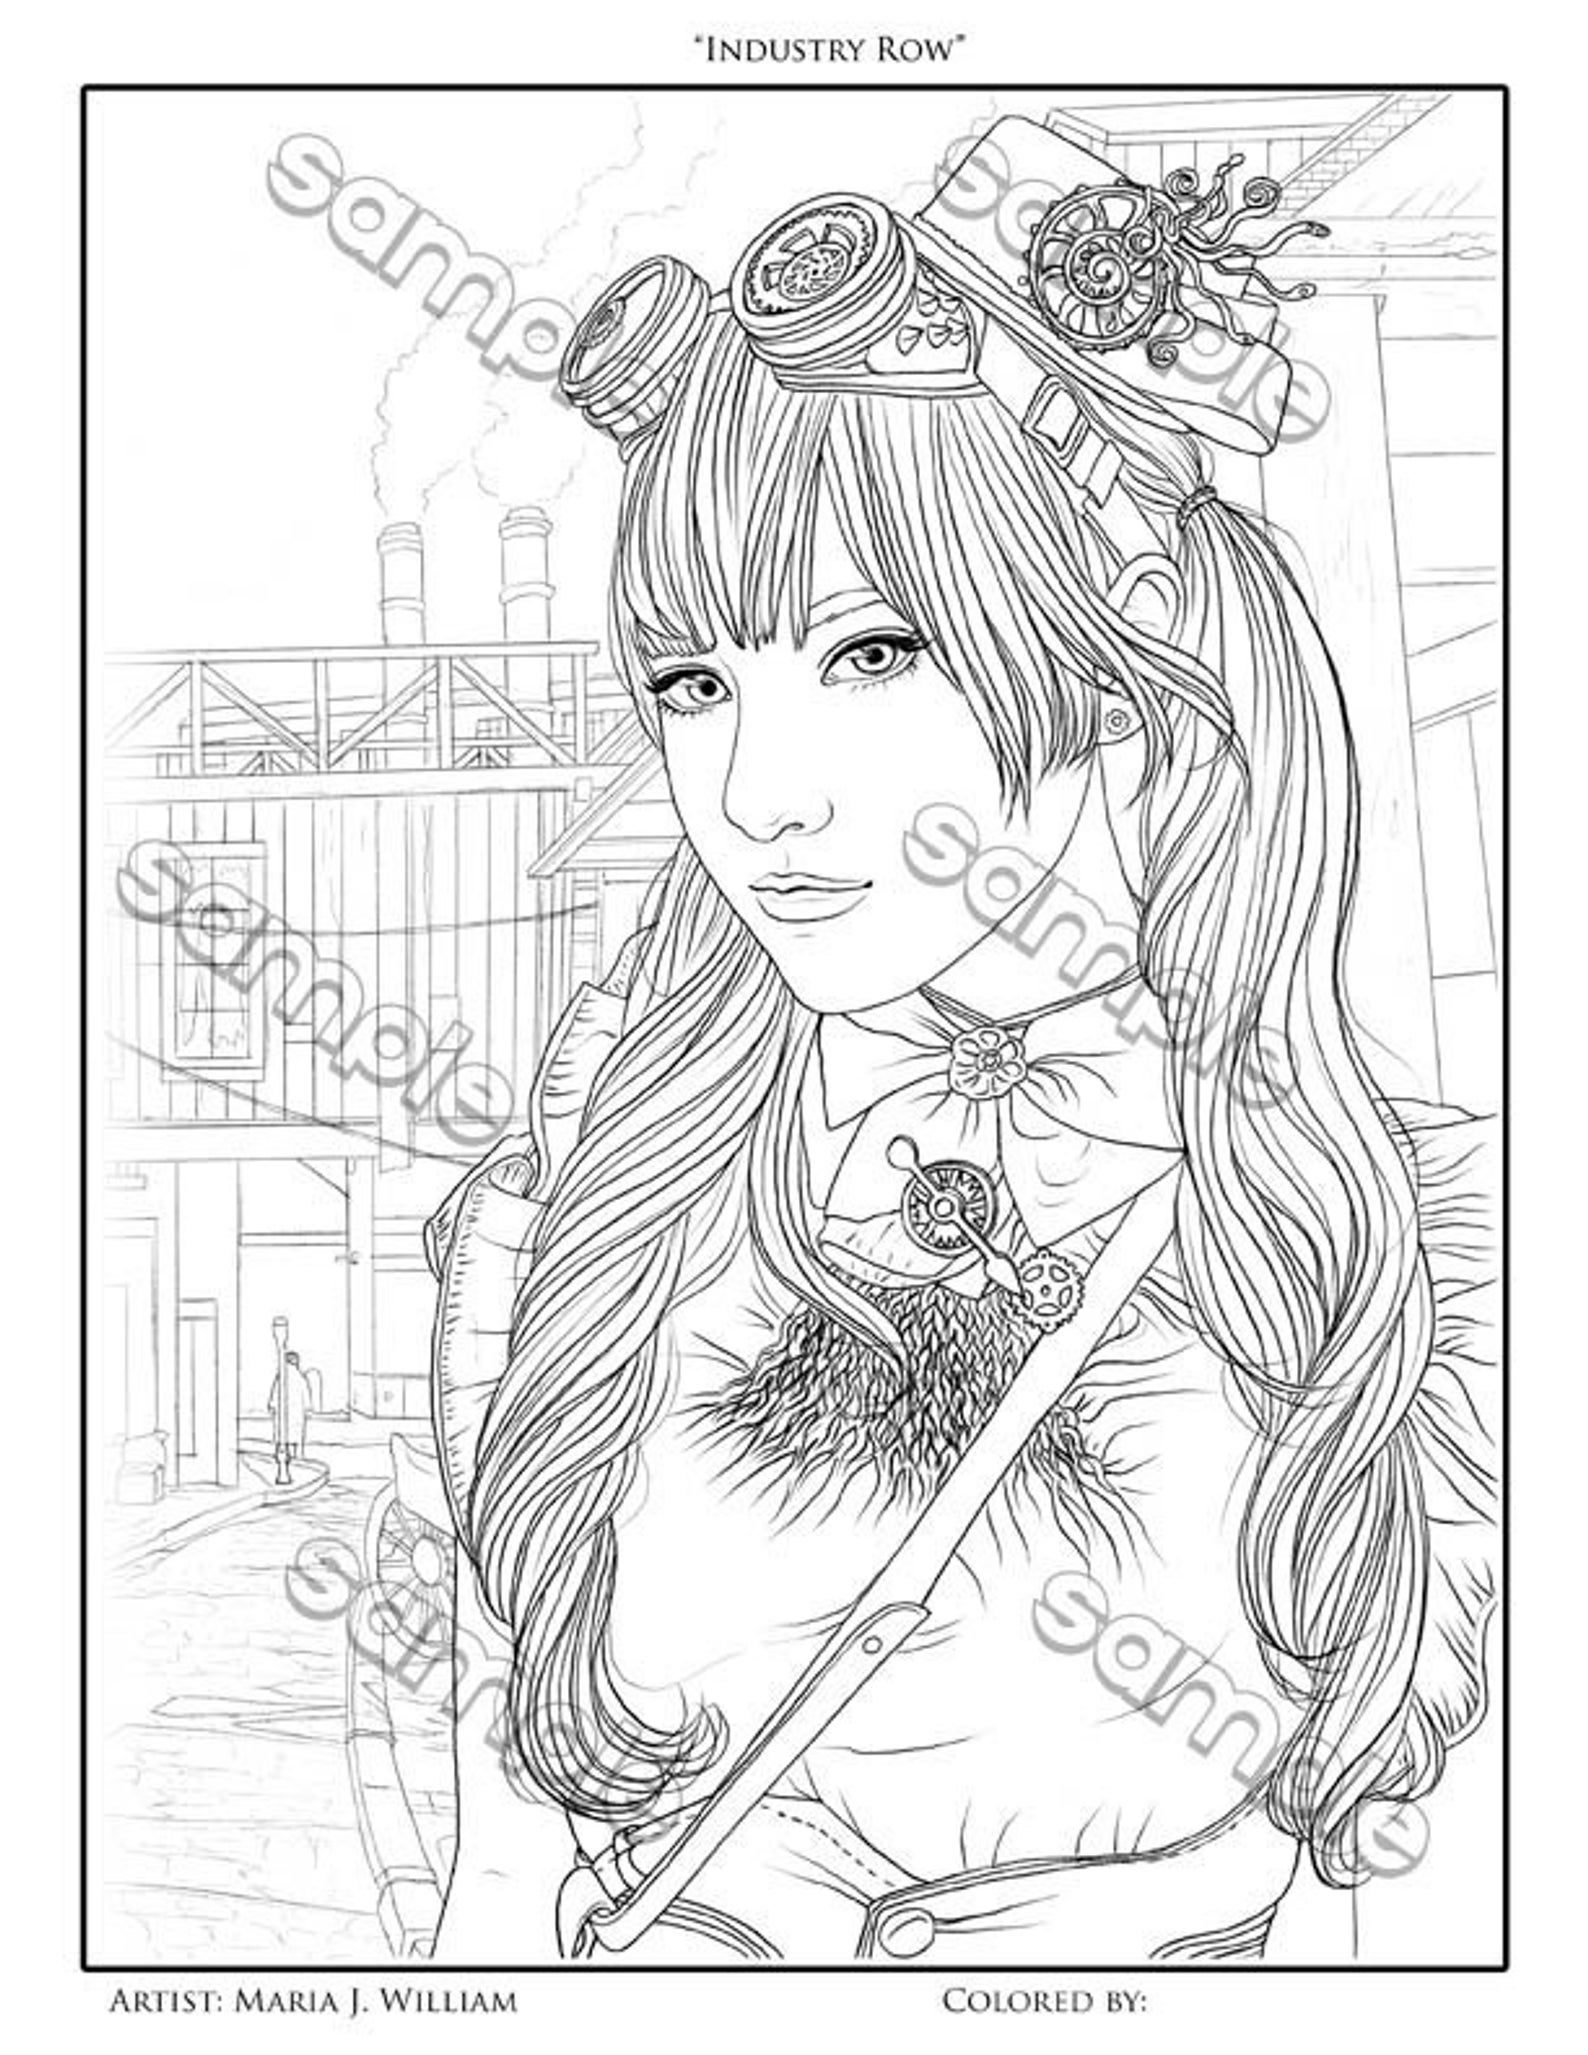 Steampunk Coloring Page By Maria J William Instant Pdf Etsy Steampunk Coloring Coloring Pages Coloring Pages To Print